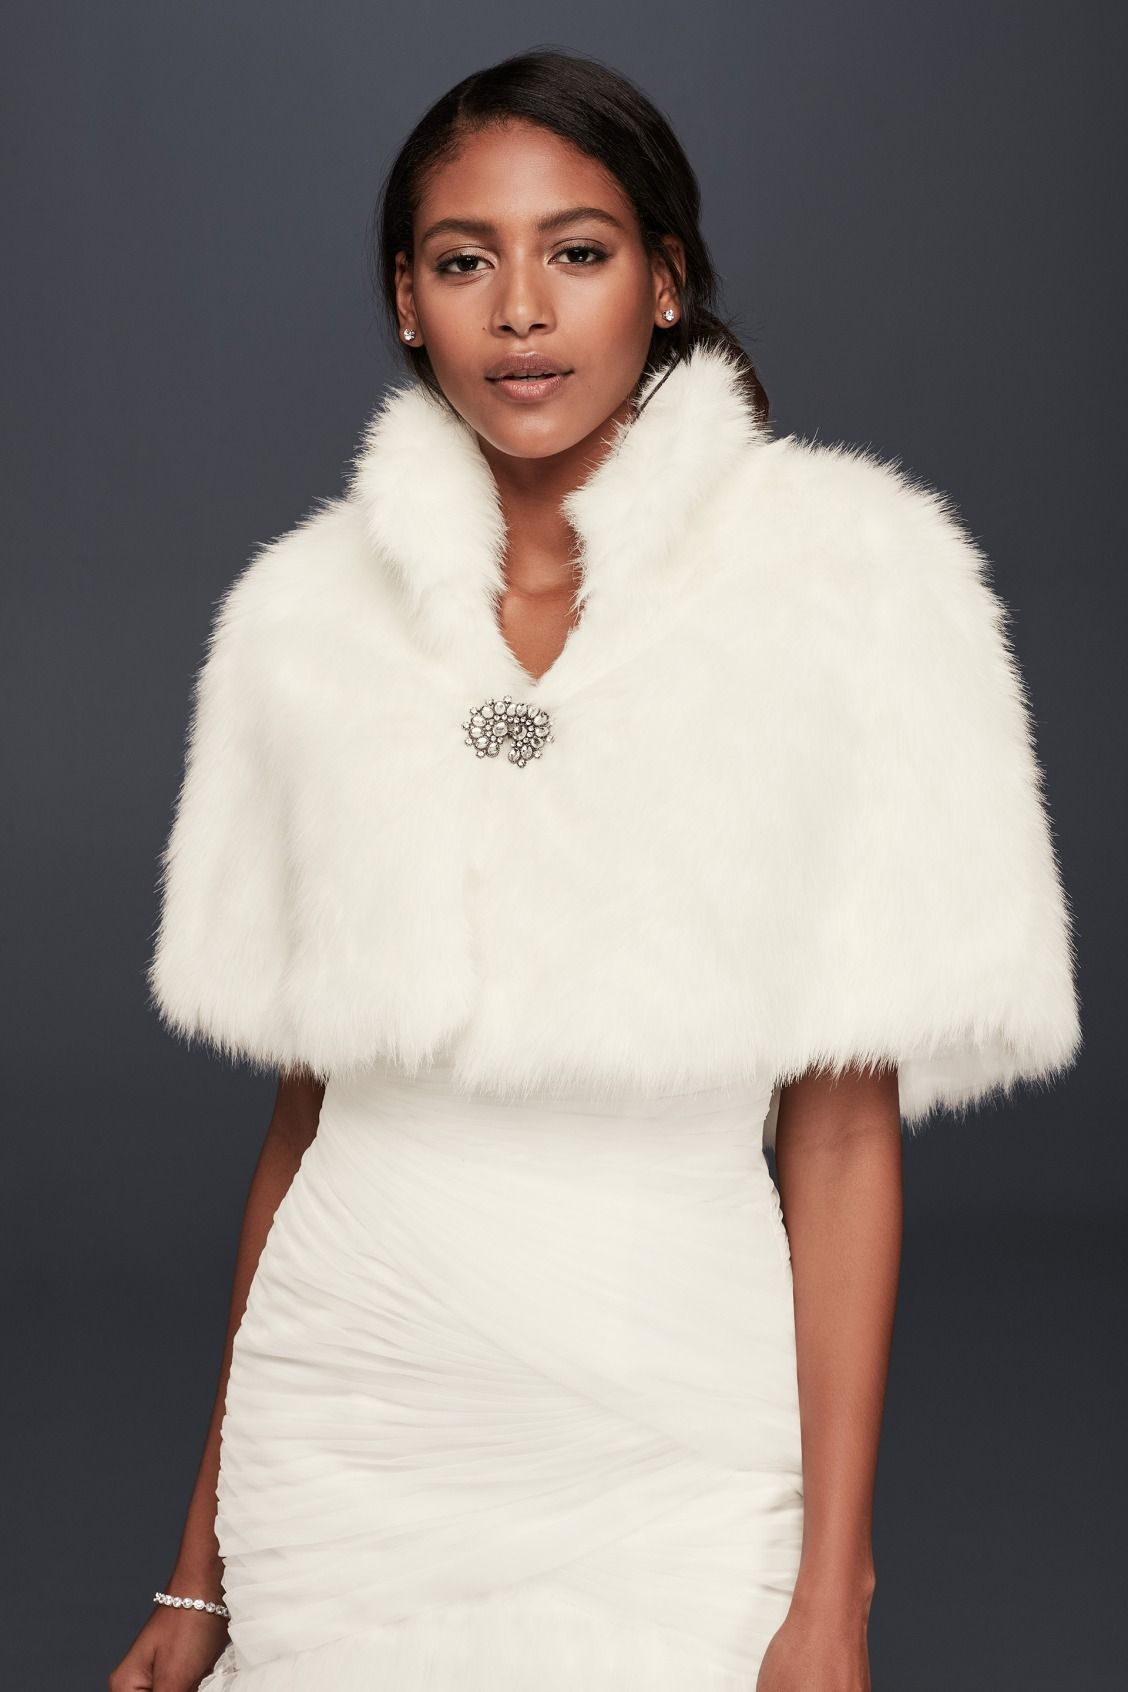 For your coldweather or winter wedding ceremony, a White